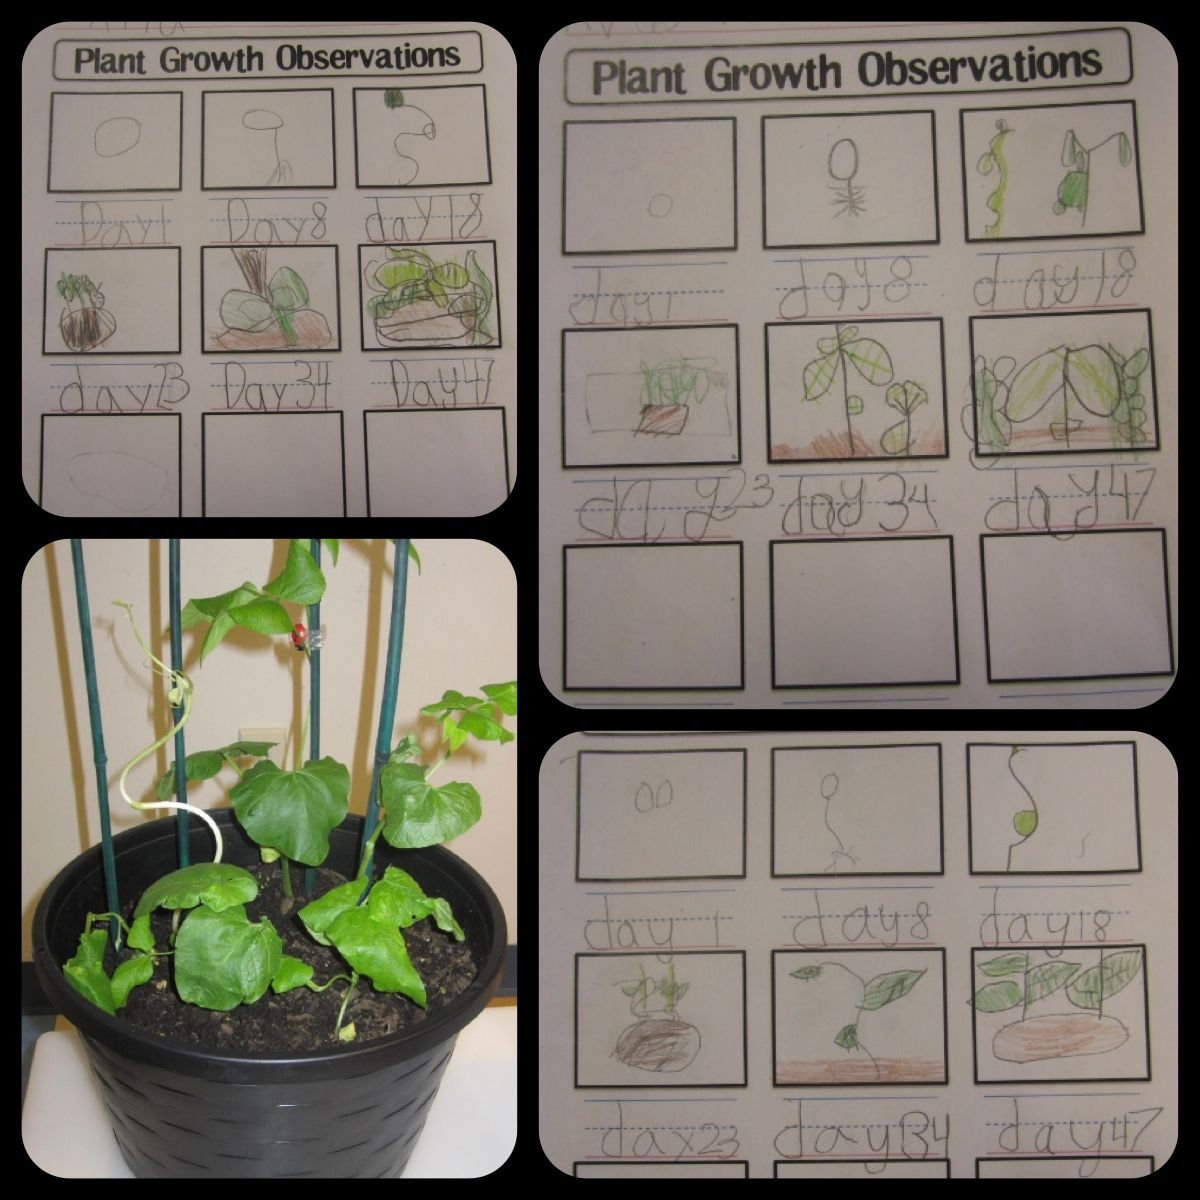 Worksheet Wednesday Plant Growth Observations